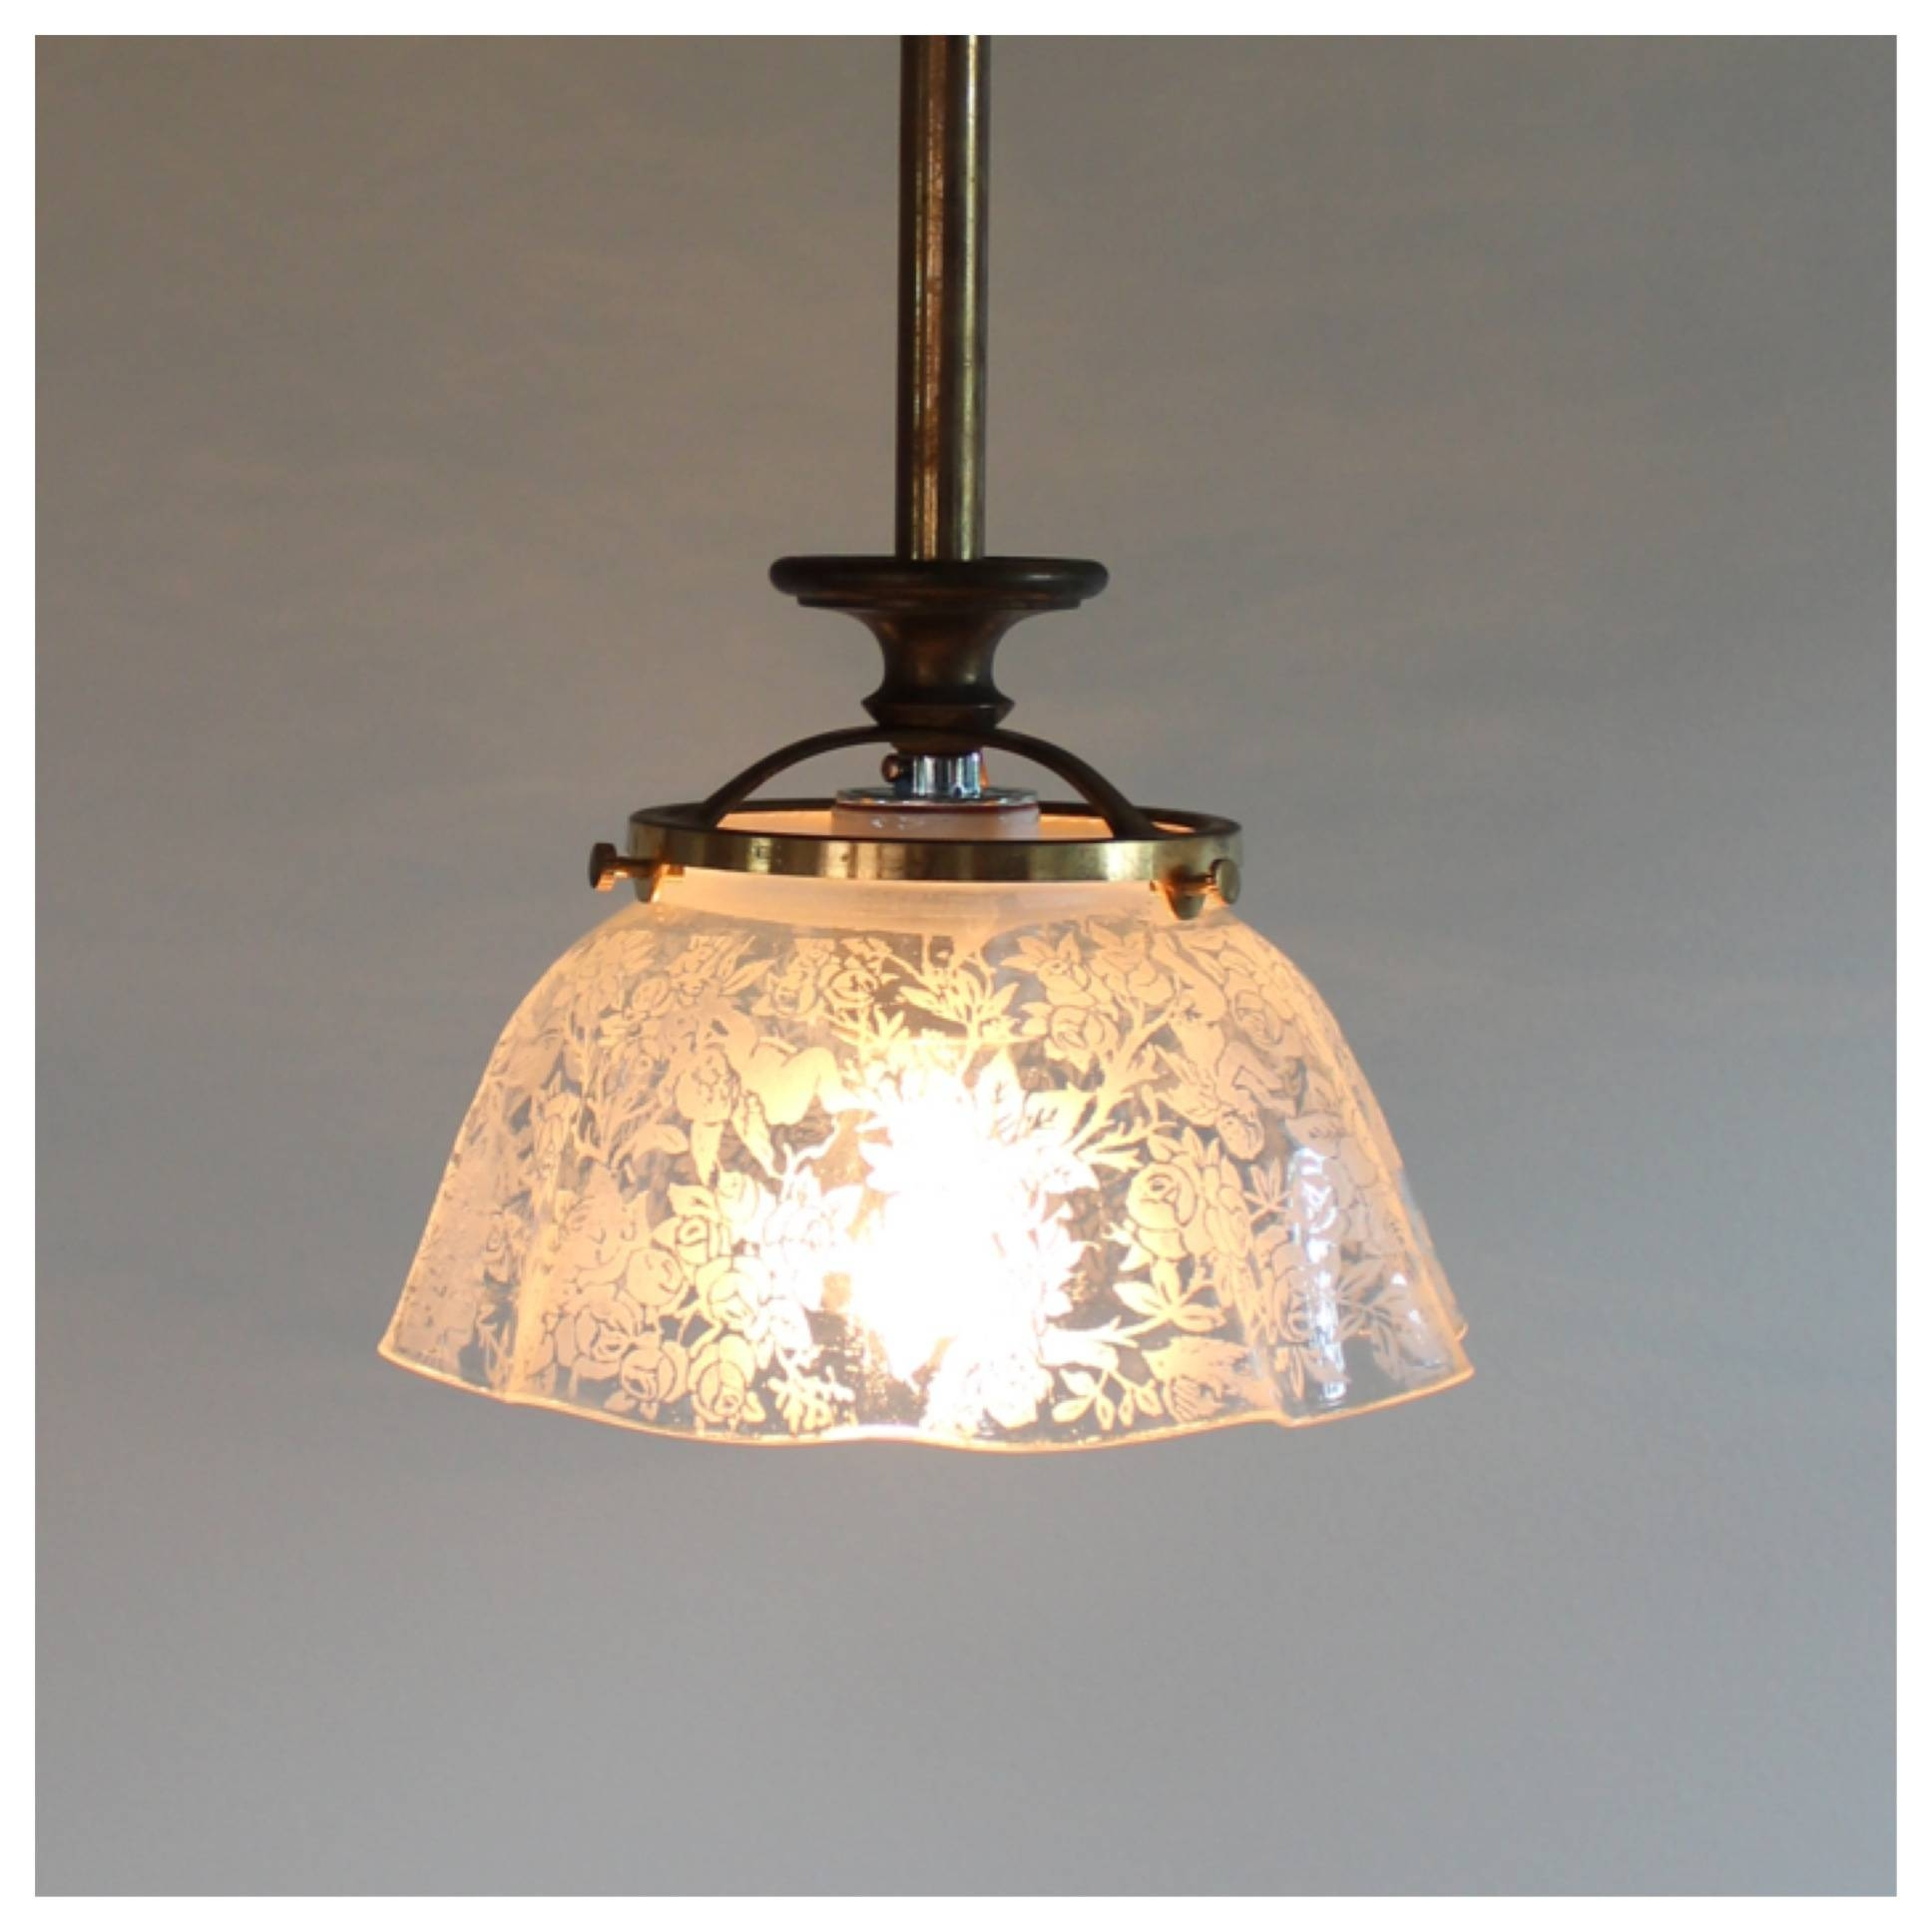 A1530 Etched Glass Shade Pendant | Bogart, Bremmer & Bradley Antiques Inside Etched Glass Pendant Lights (View 3 of 15)